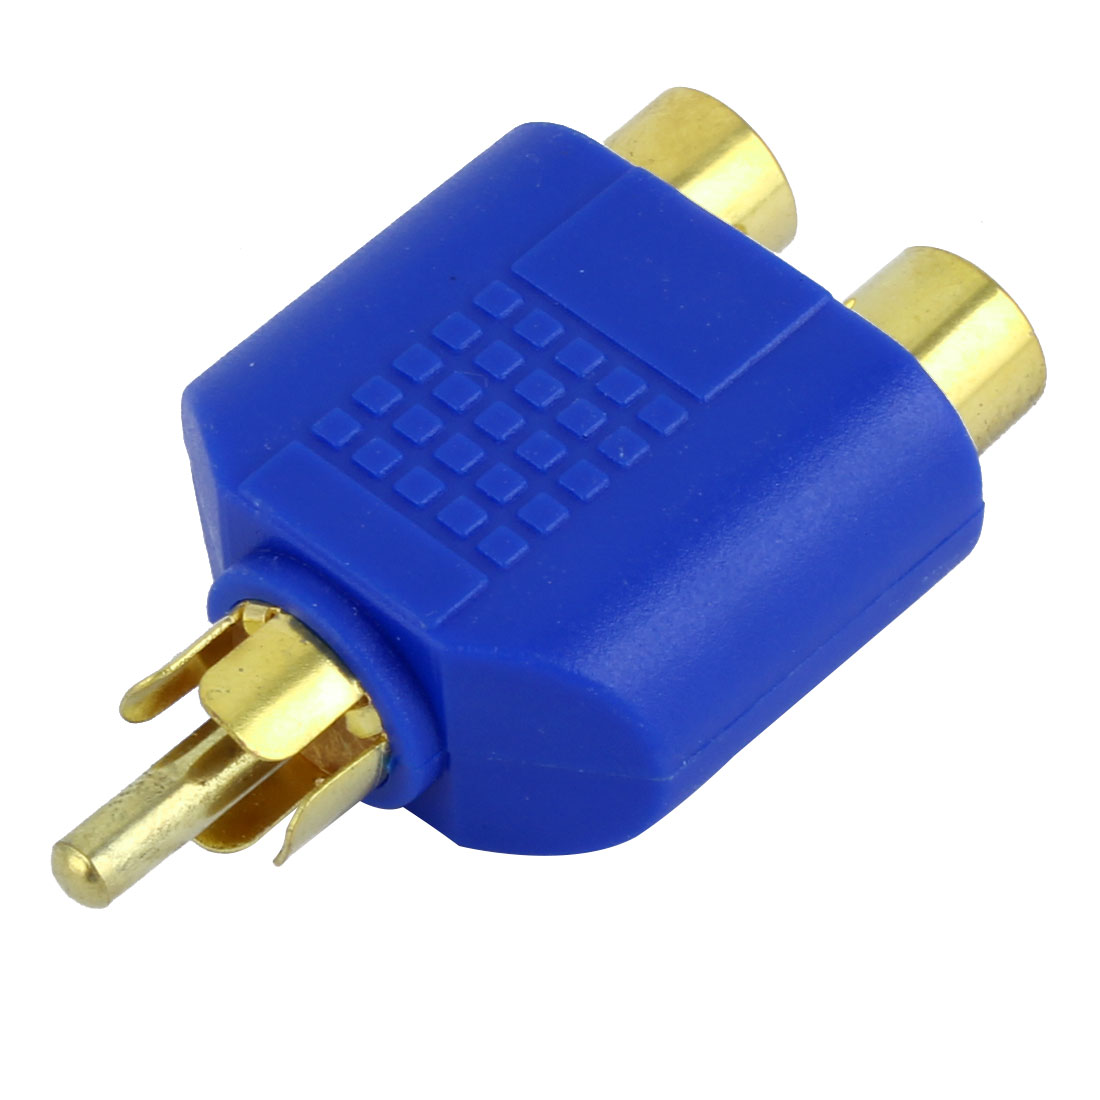 RCA Male to Double RCA Female Connector Adapter Splitter Blue